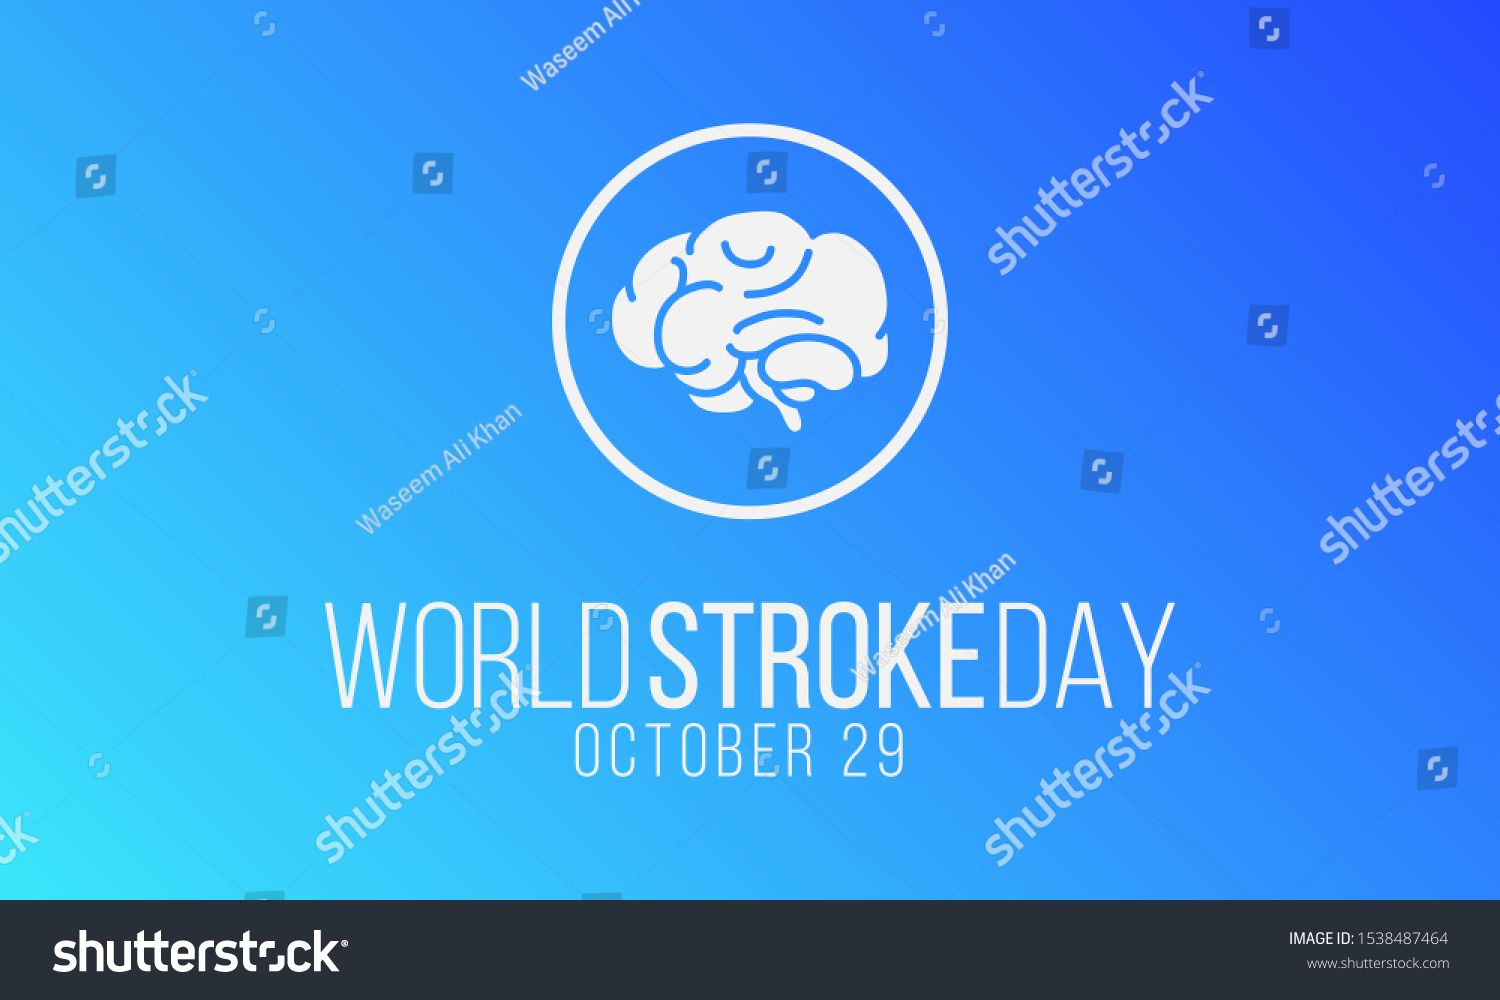 Vector Illustration On The Theme Of World Stroke Day On October 29th Ad Spon Theme World Vector Illustration In 2020 World Stroke Day Poster Mockup Theme